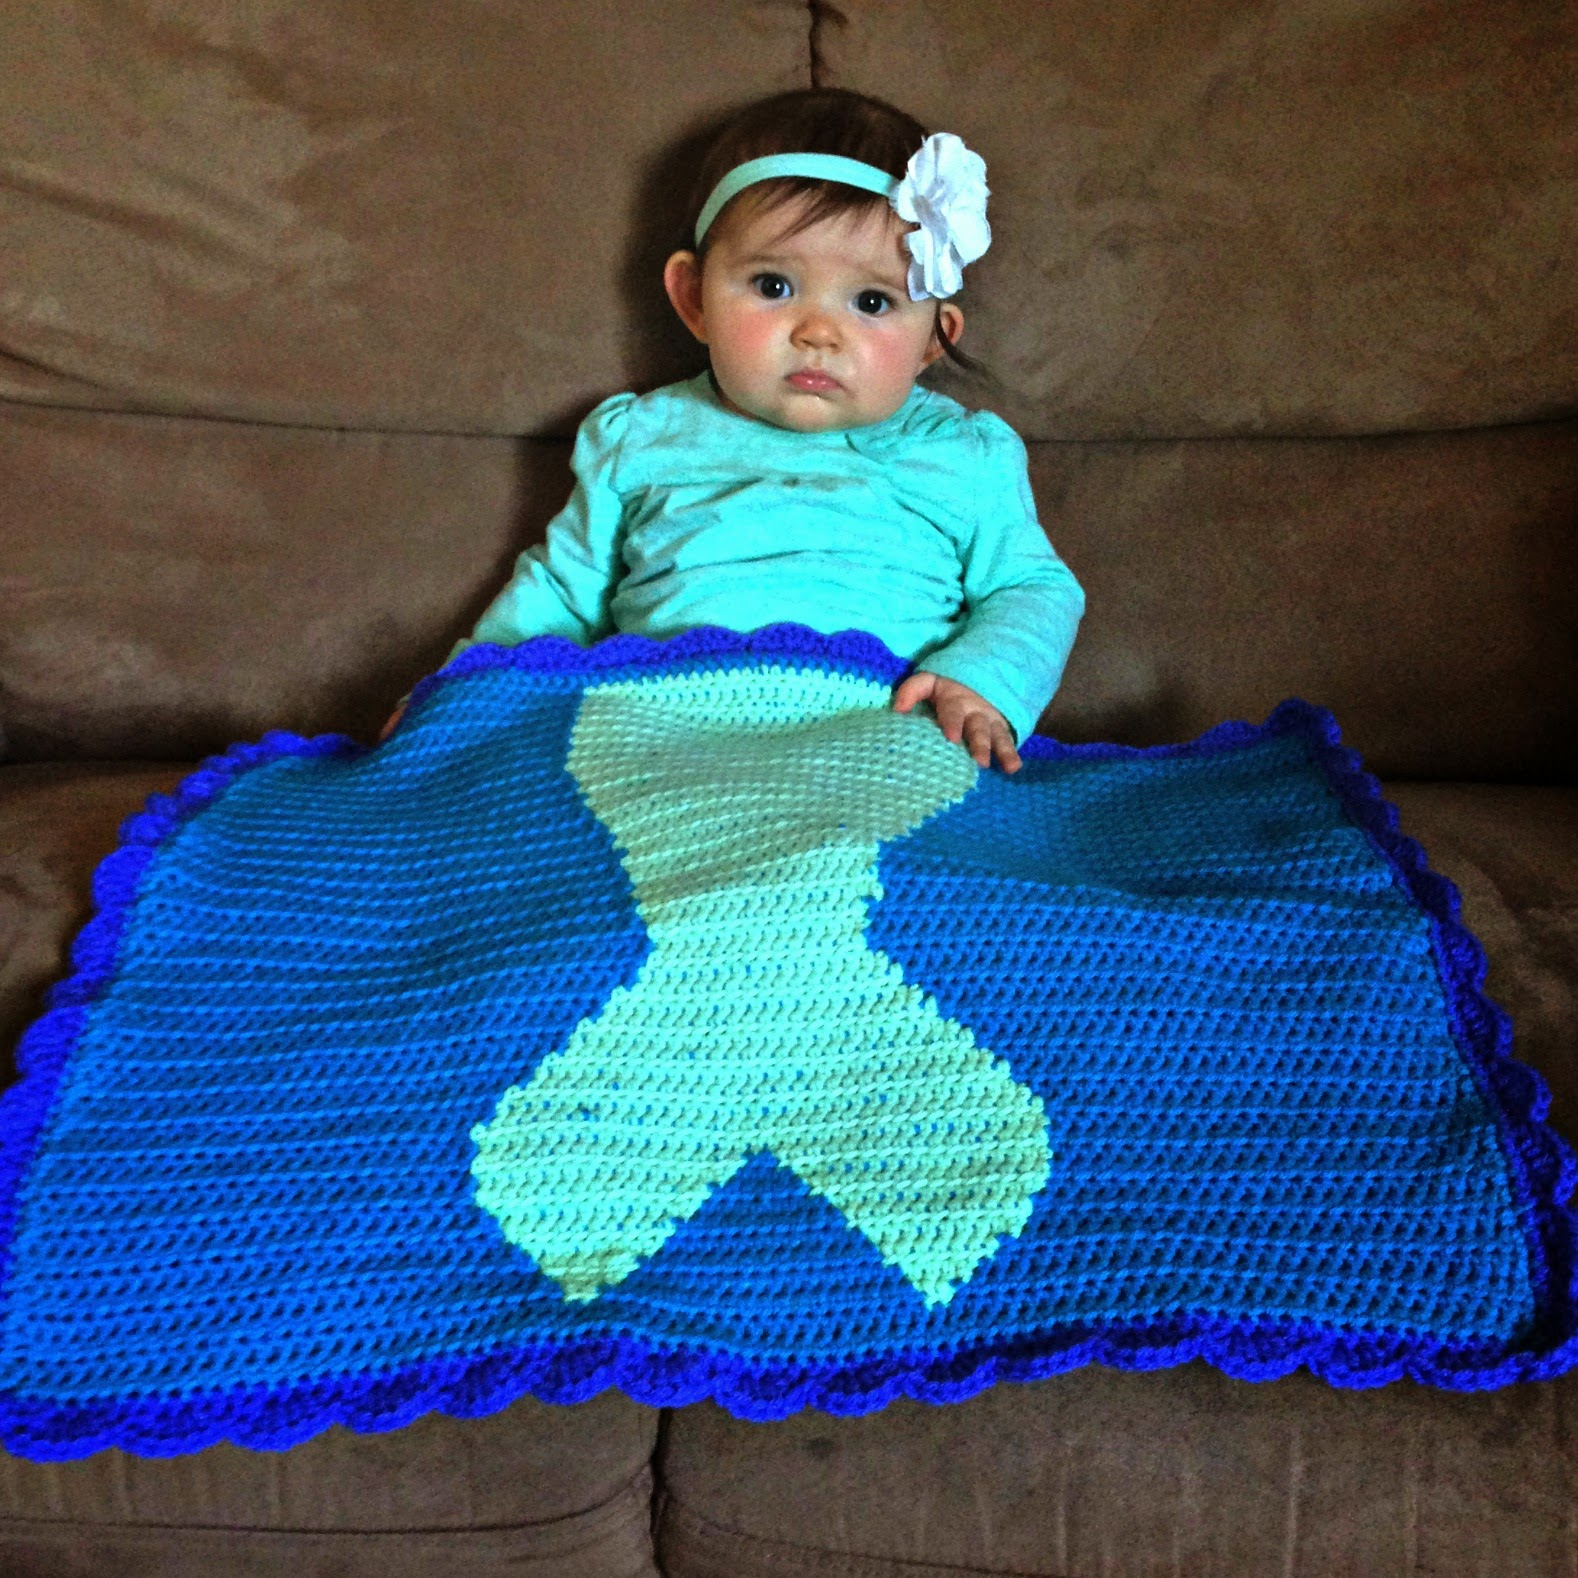 Free Crochet Pattern Mermaid Tail Blanket : Free Crochet Mermaid Tail Blanket Pattern - The Friendly ...